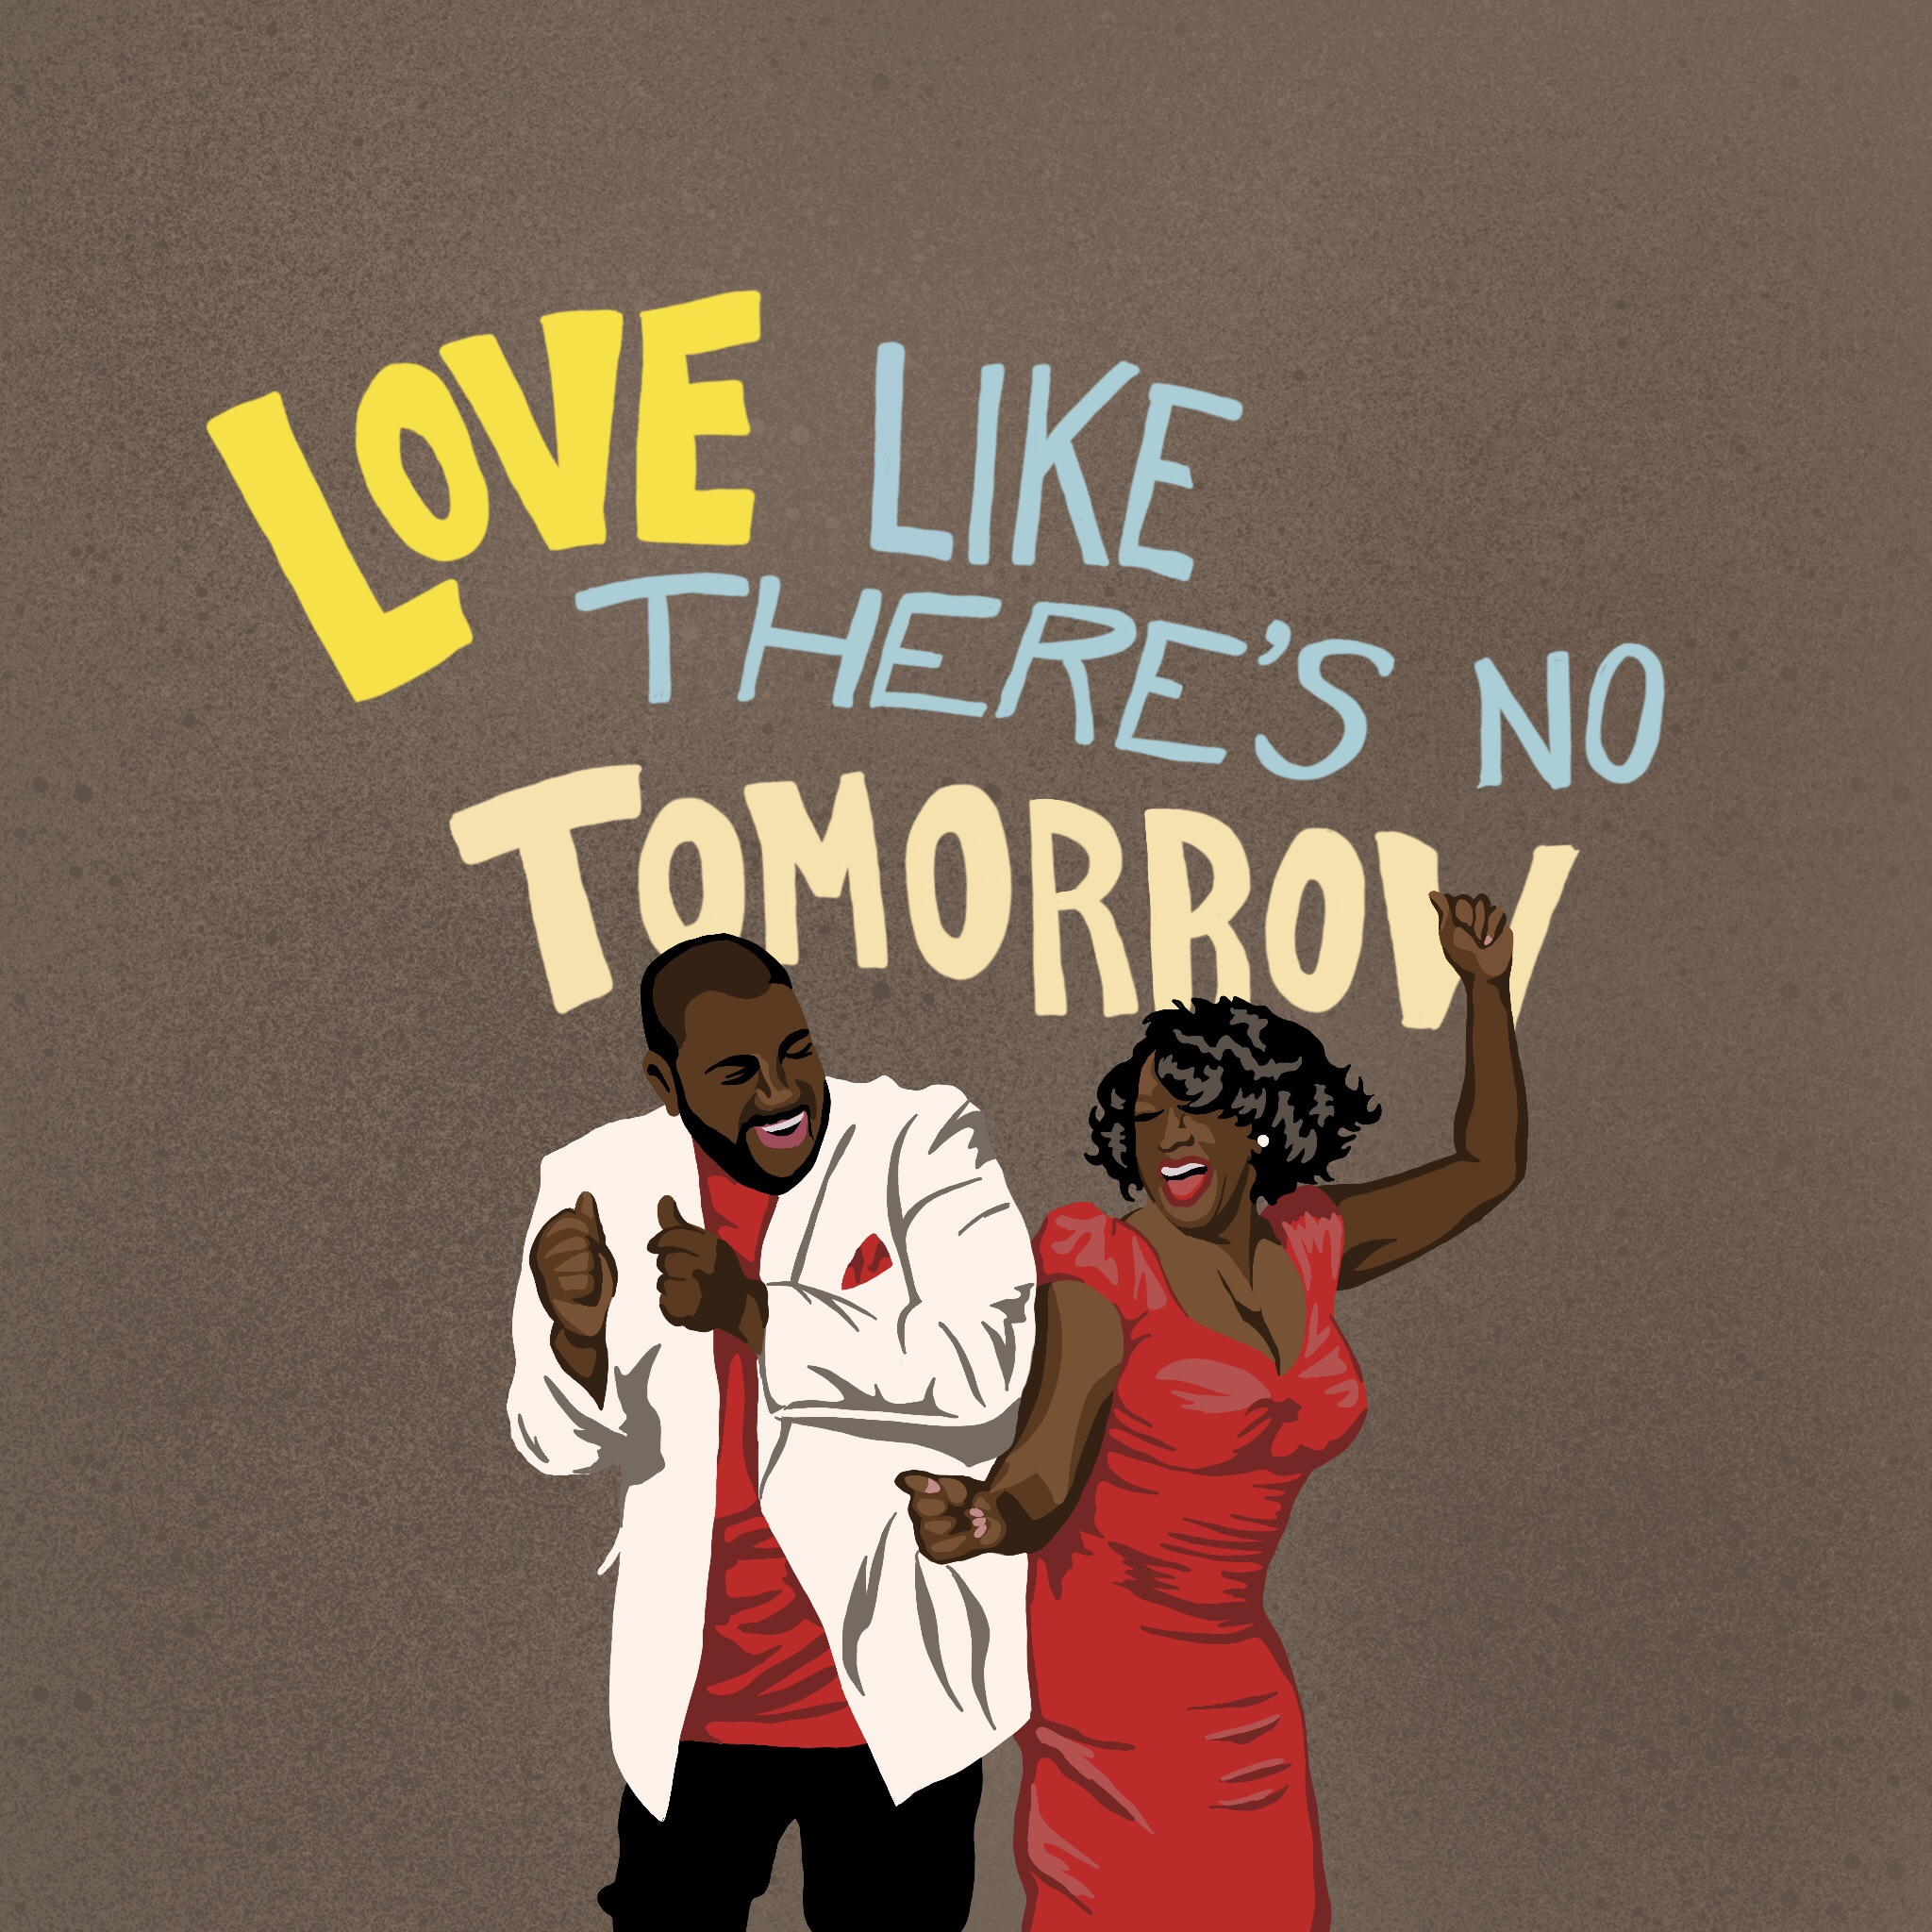 01 Love Like There's No Tomorrow.JPG